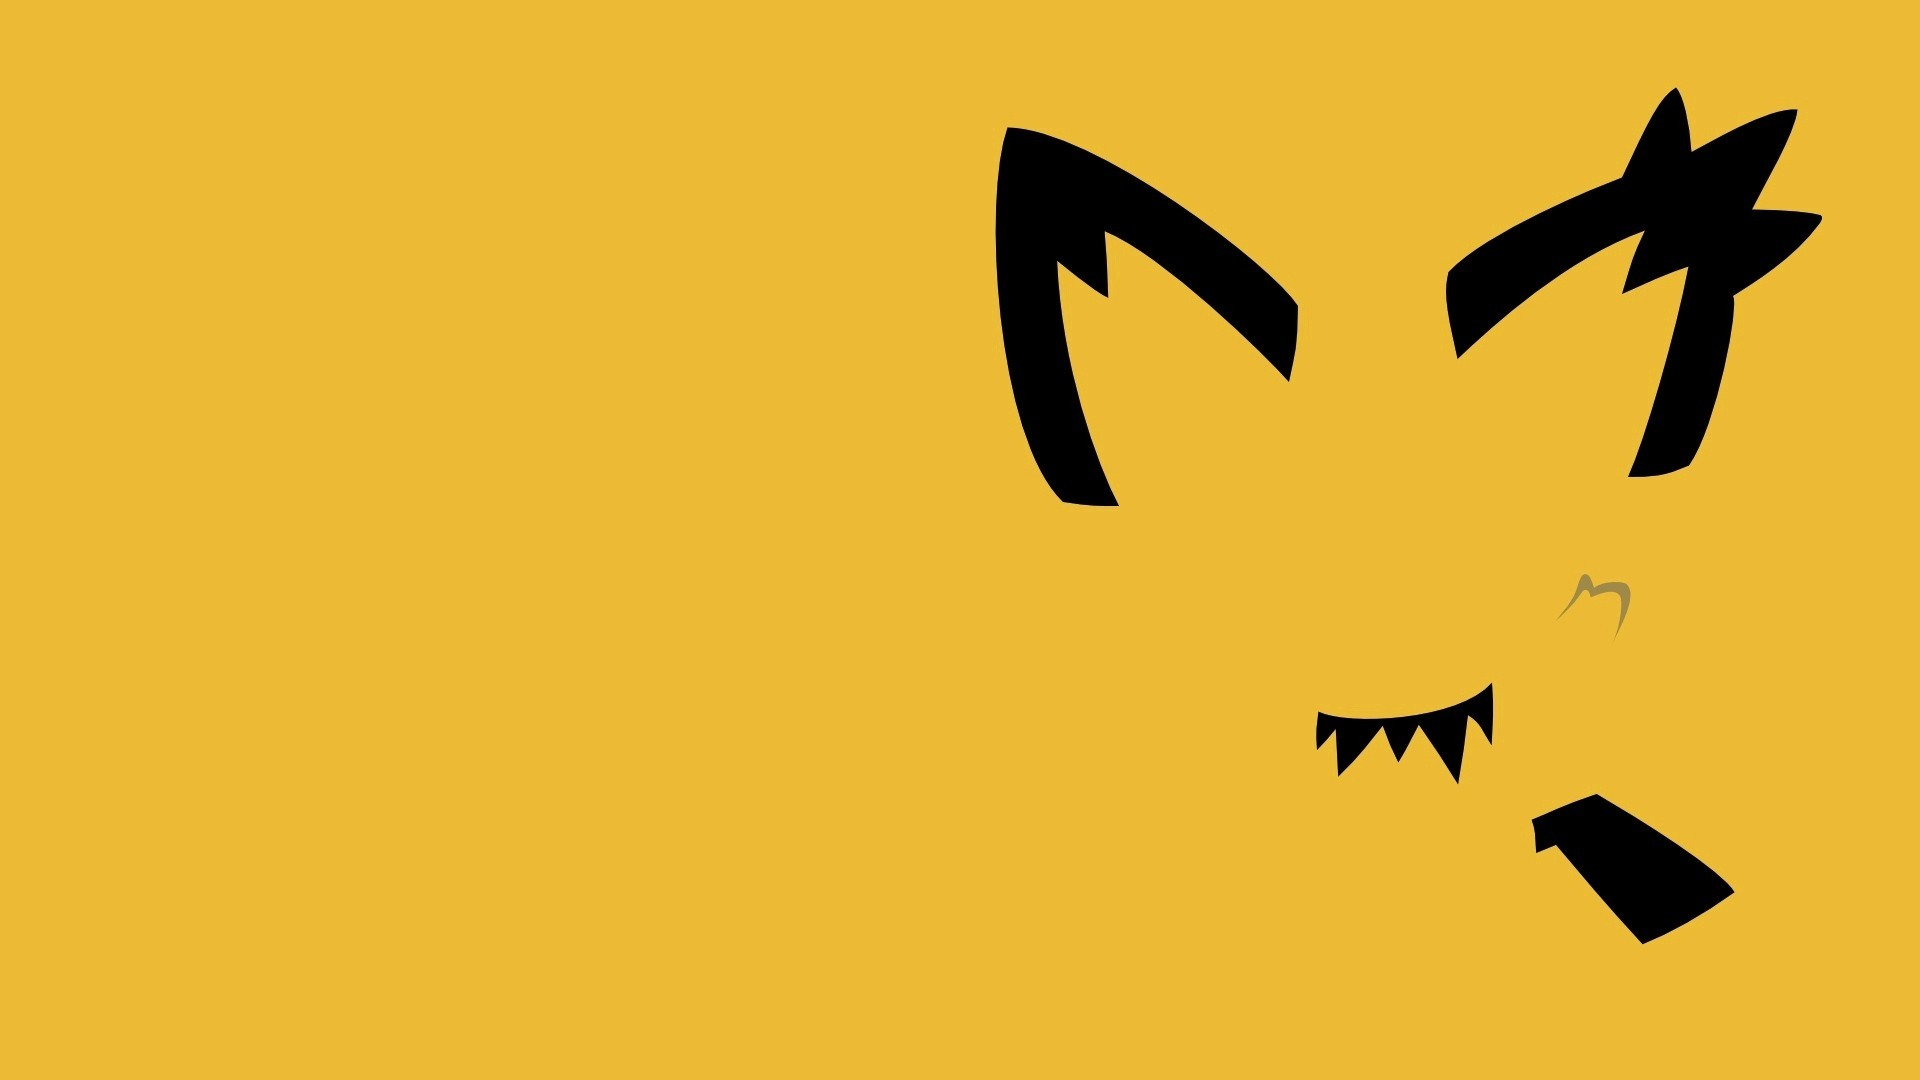 73 Pichu Wallpapers on WallpaperPlay 1920x1080